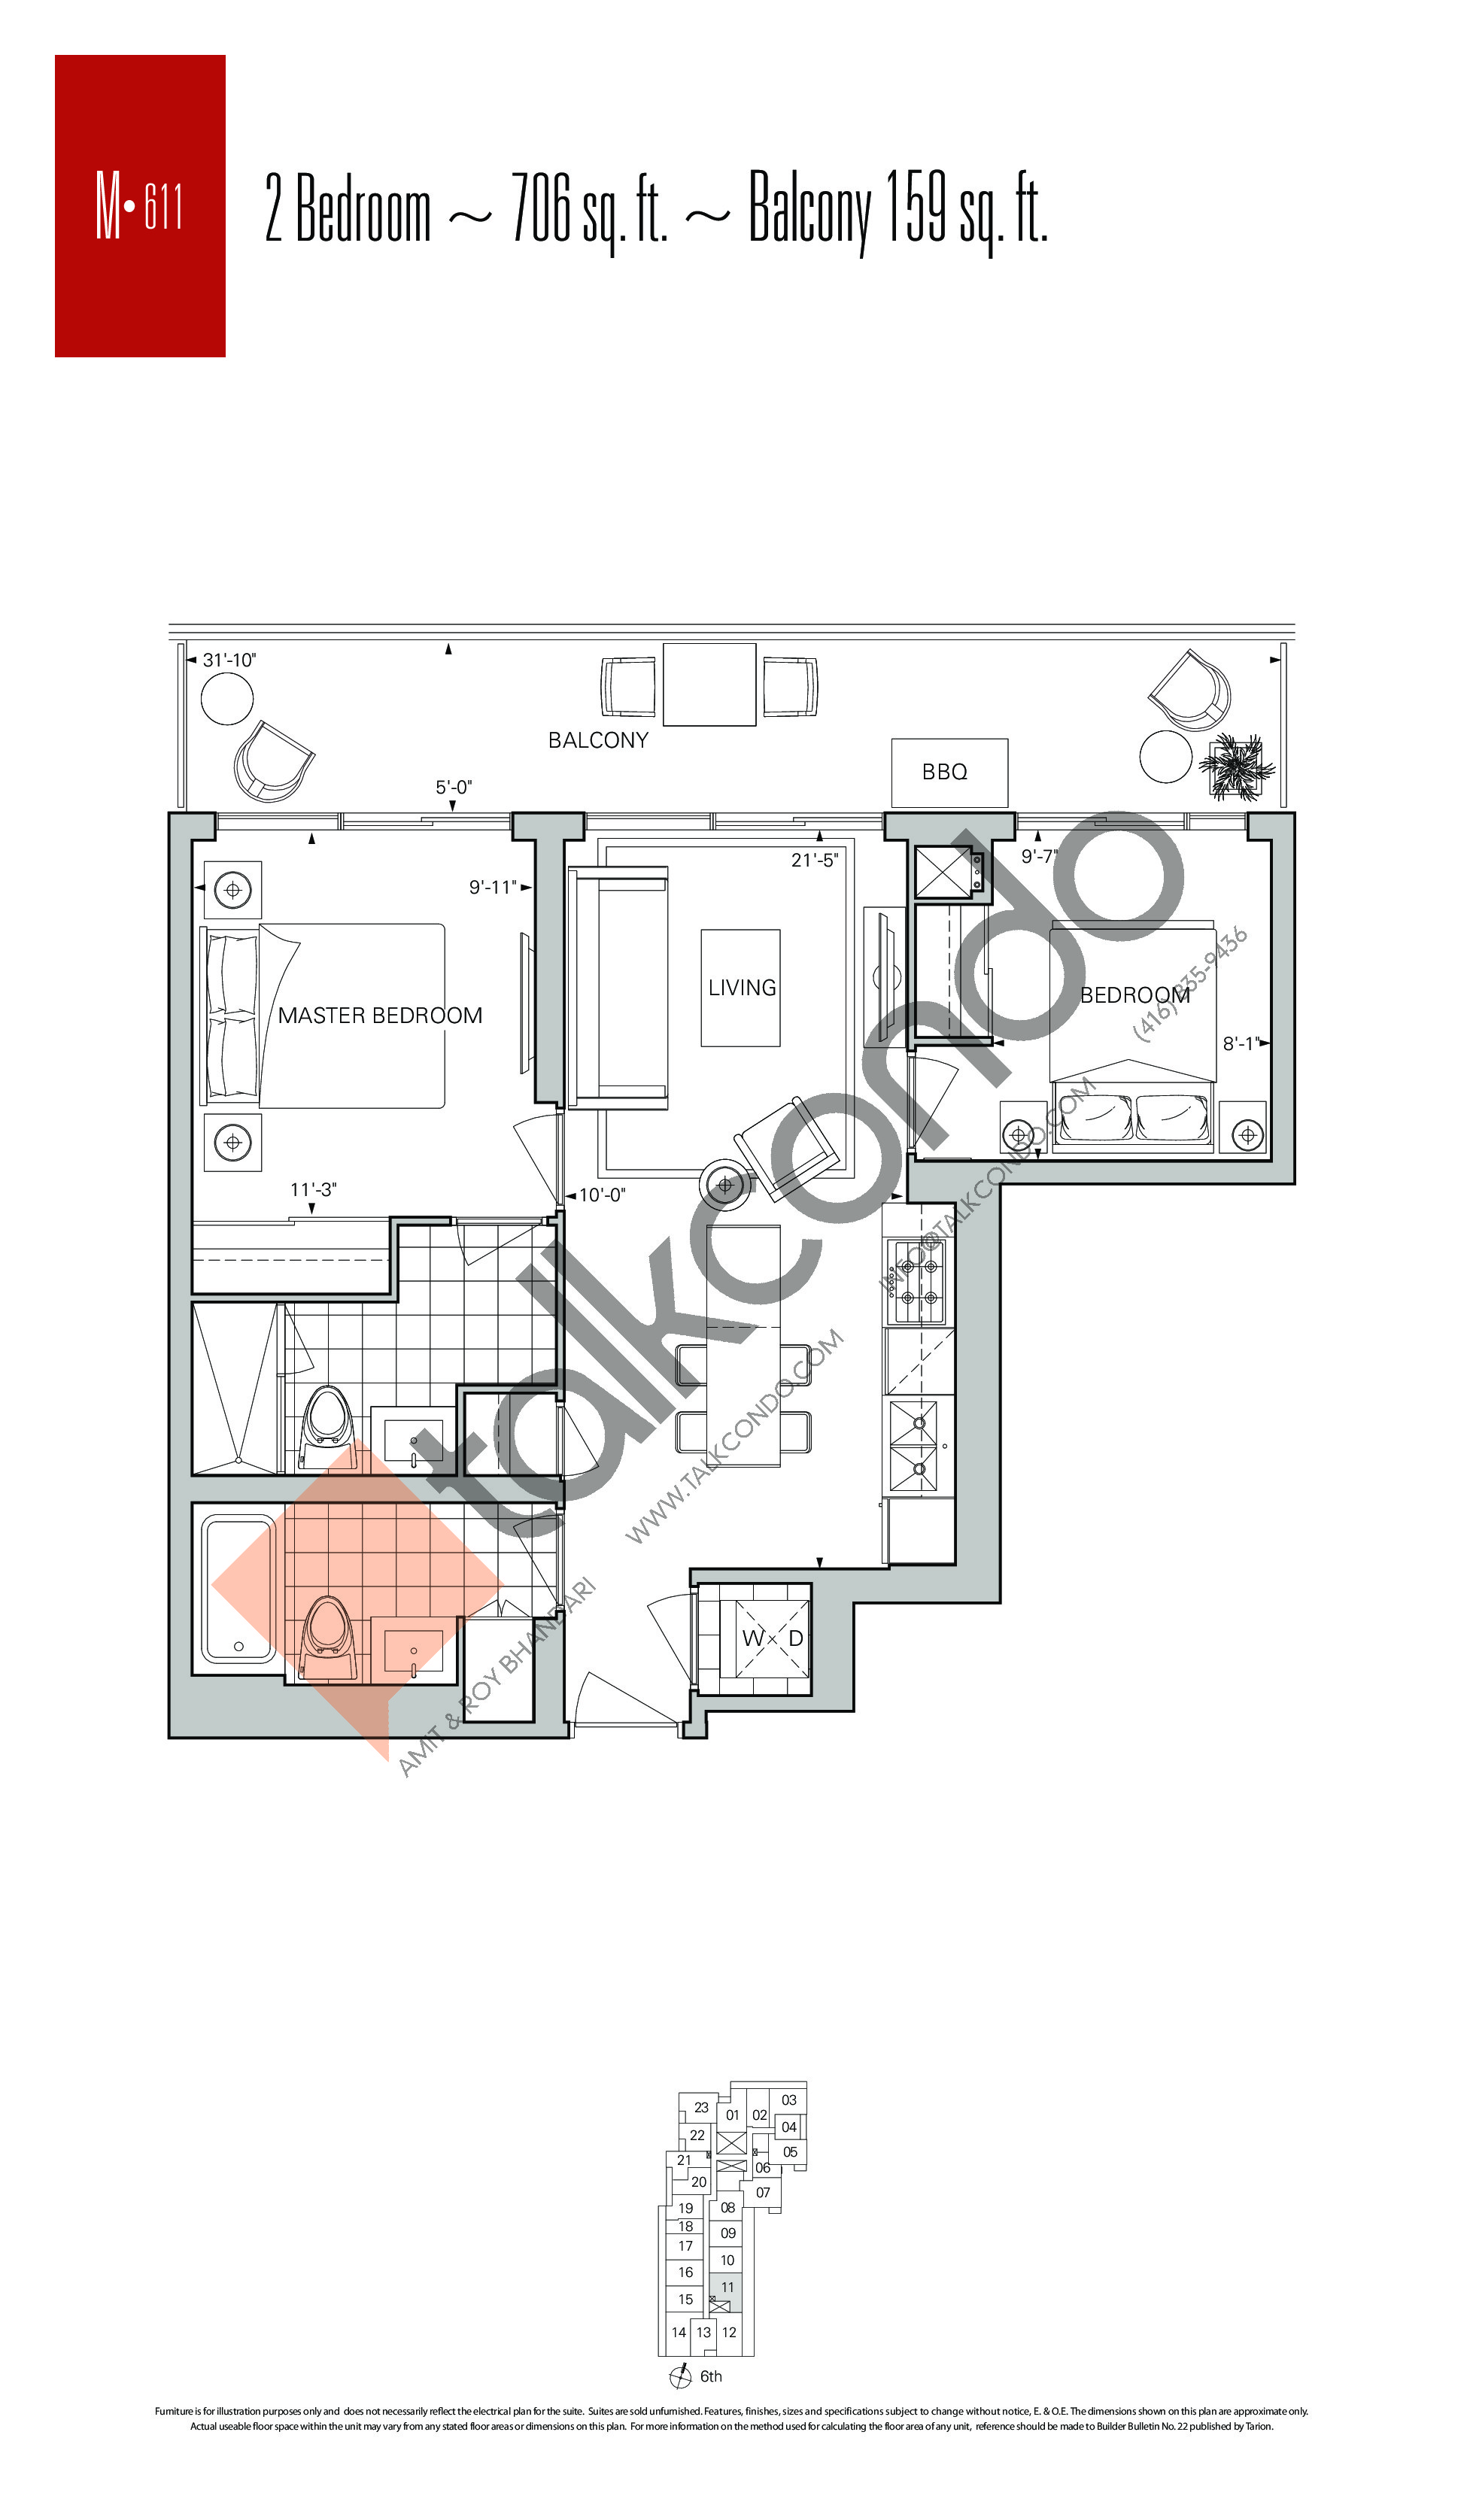 M-611 Floor Plan at Rise Condos - 706 sq.ft